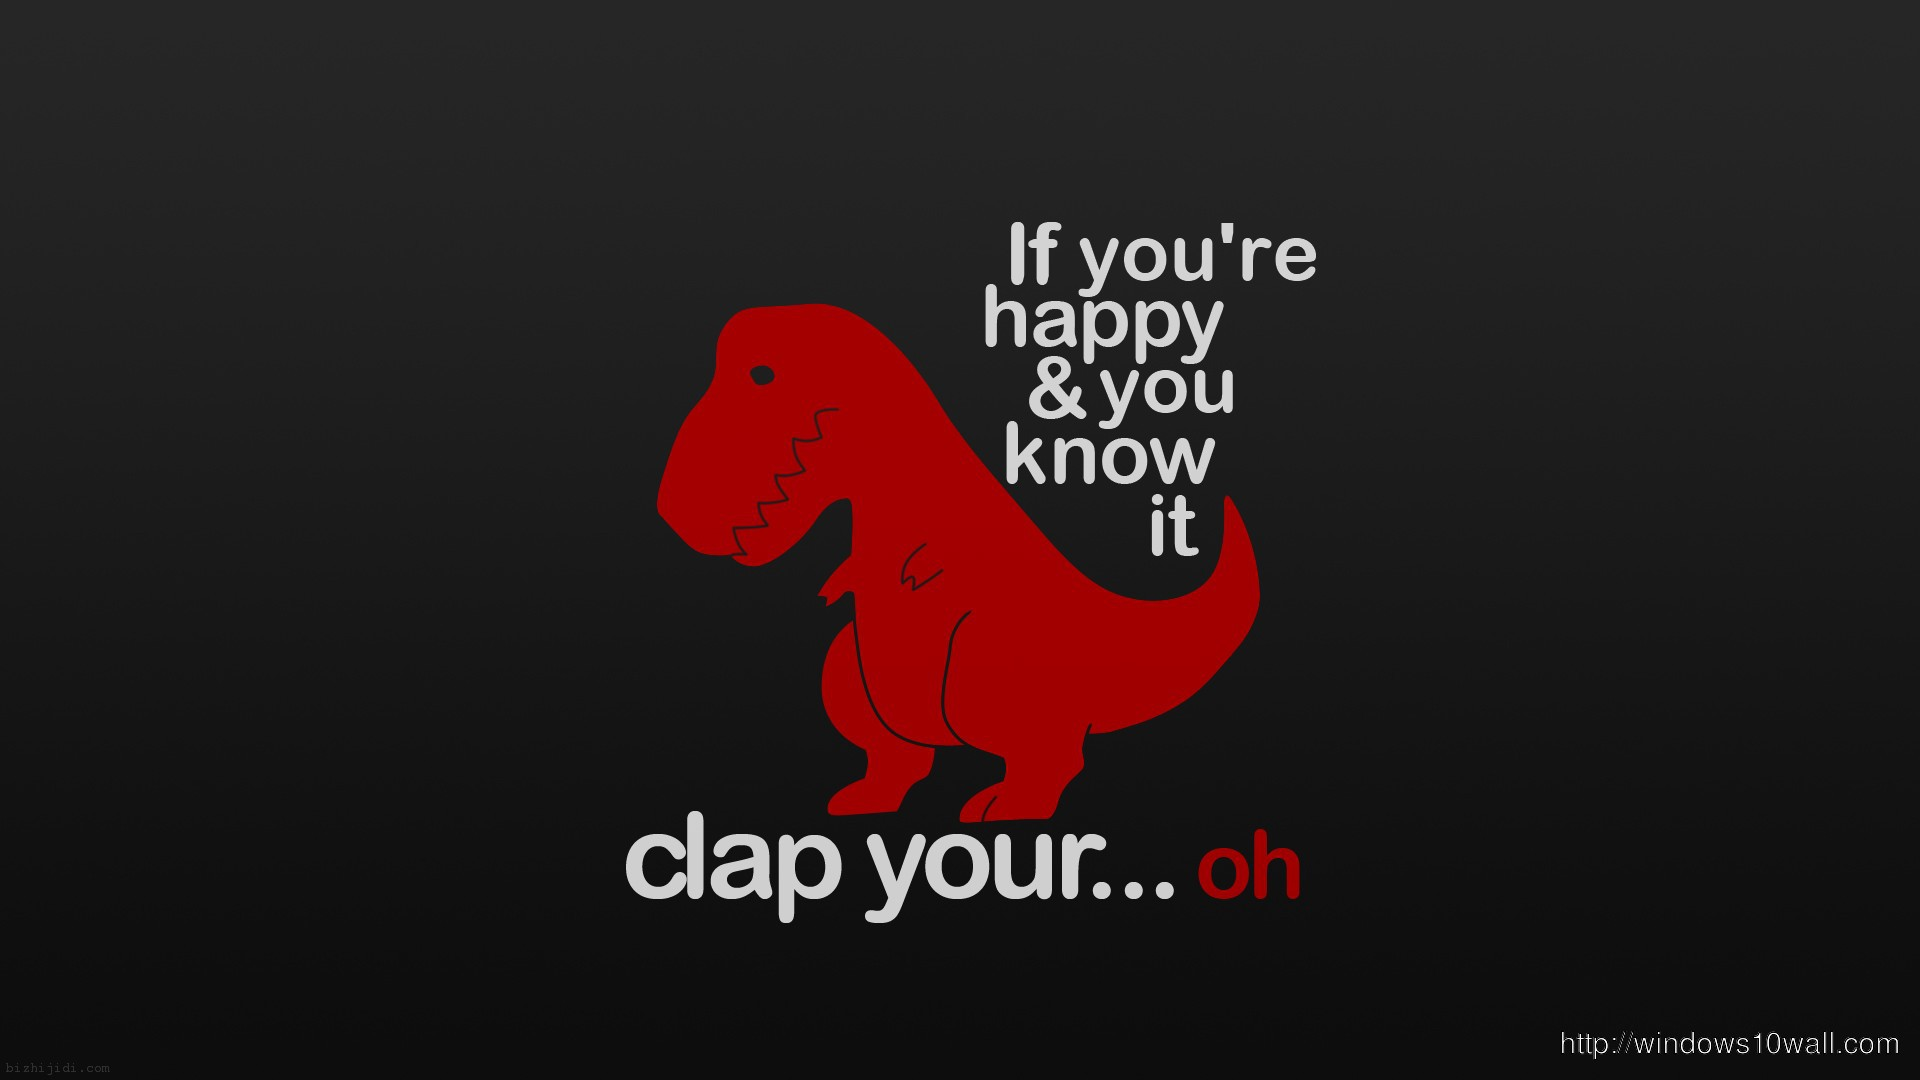 Funny Quotes HD Wallpaper 2013 - windows 10 Wallpapers